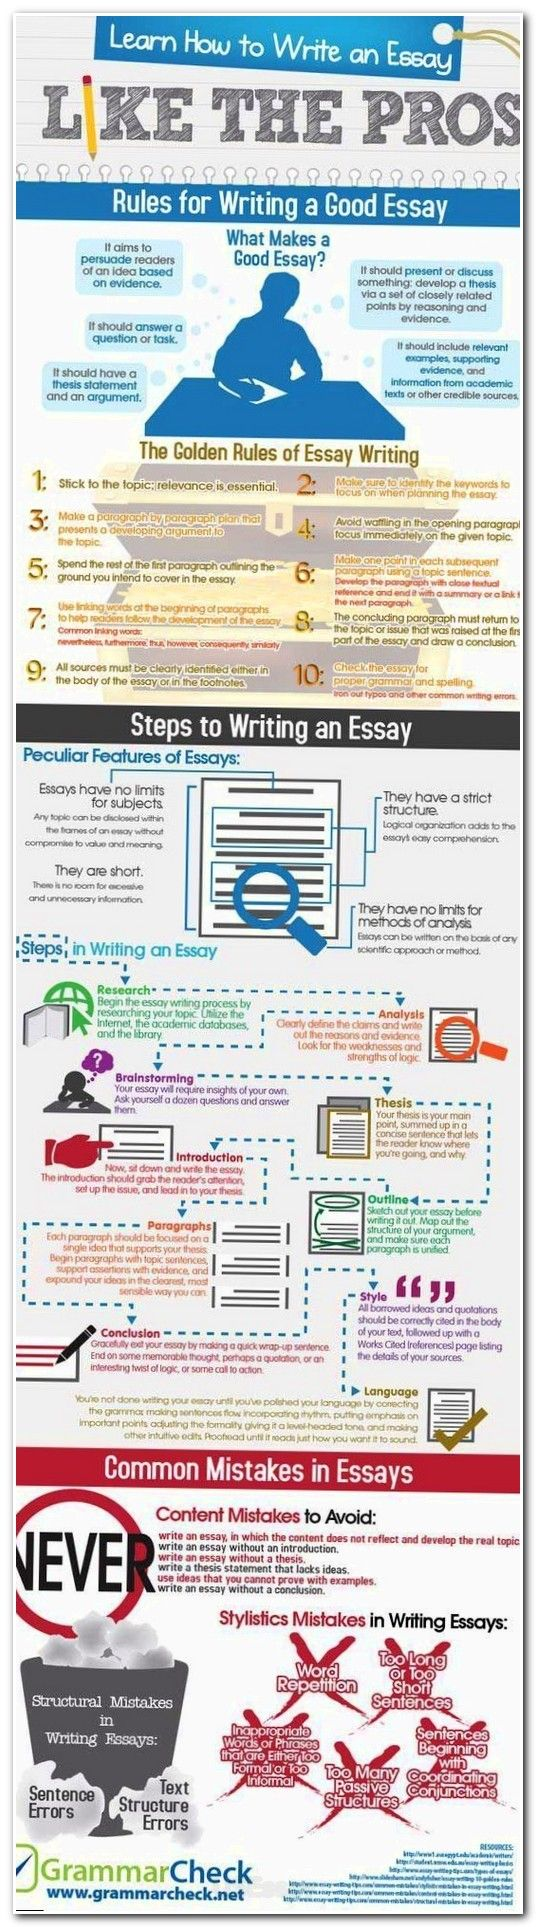 essays on high school high school essay competition march    sampan     Pinterest Rules for essay writing competition